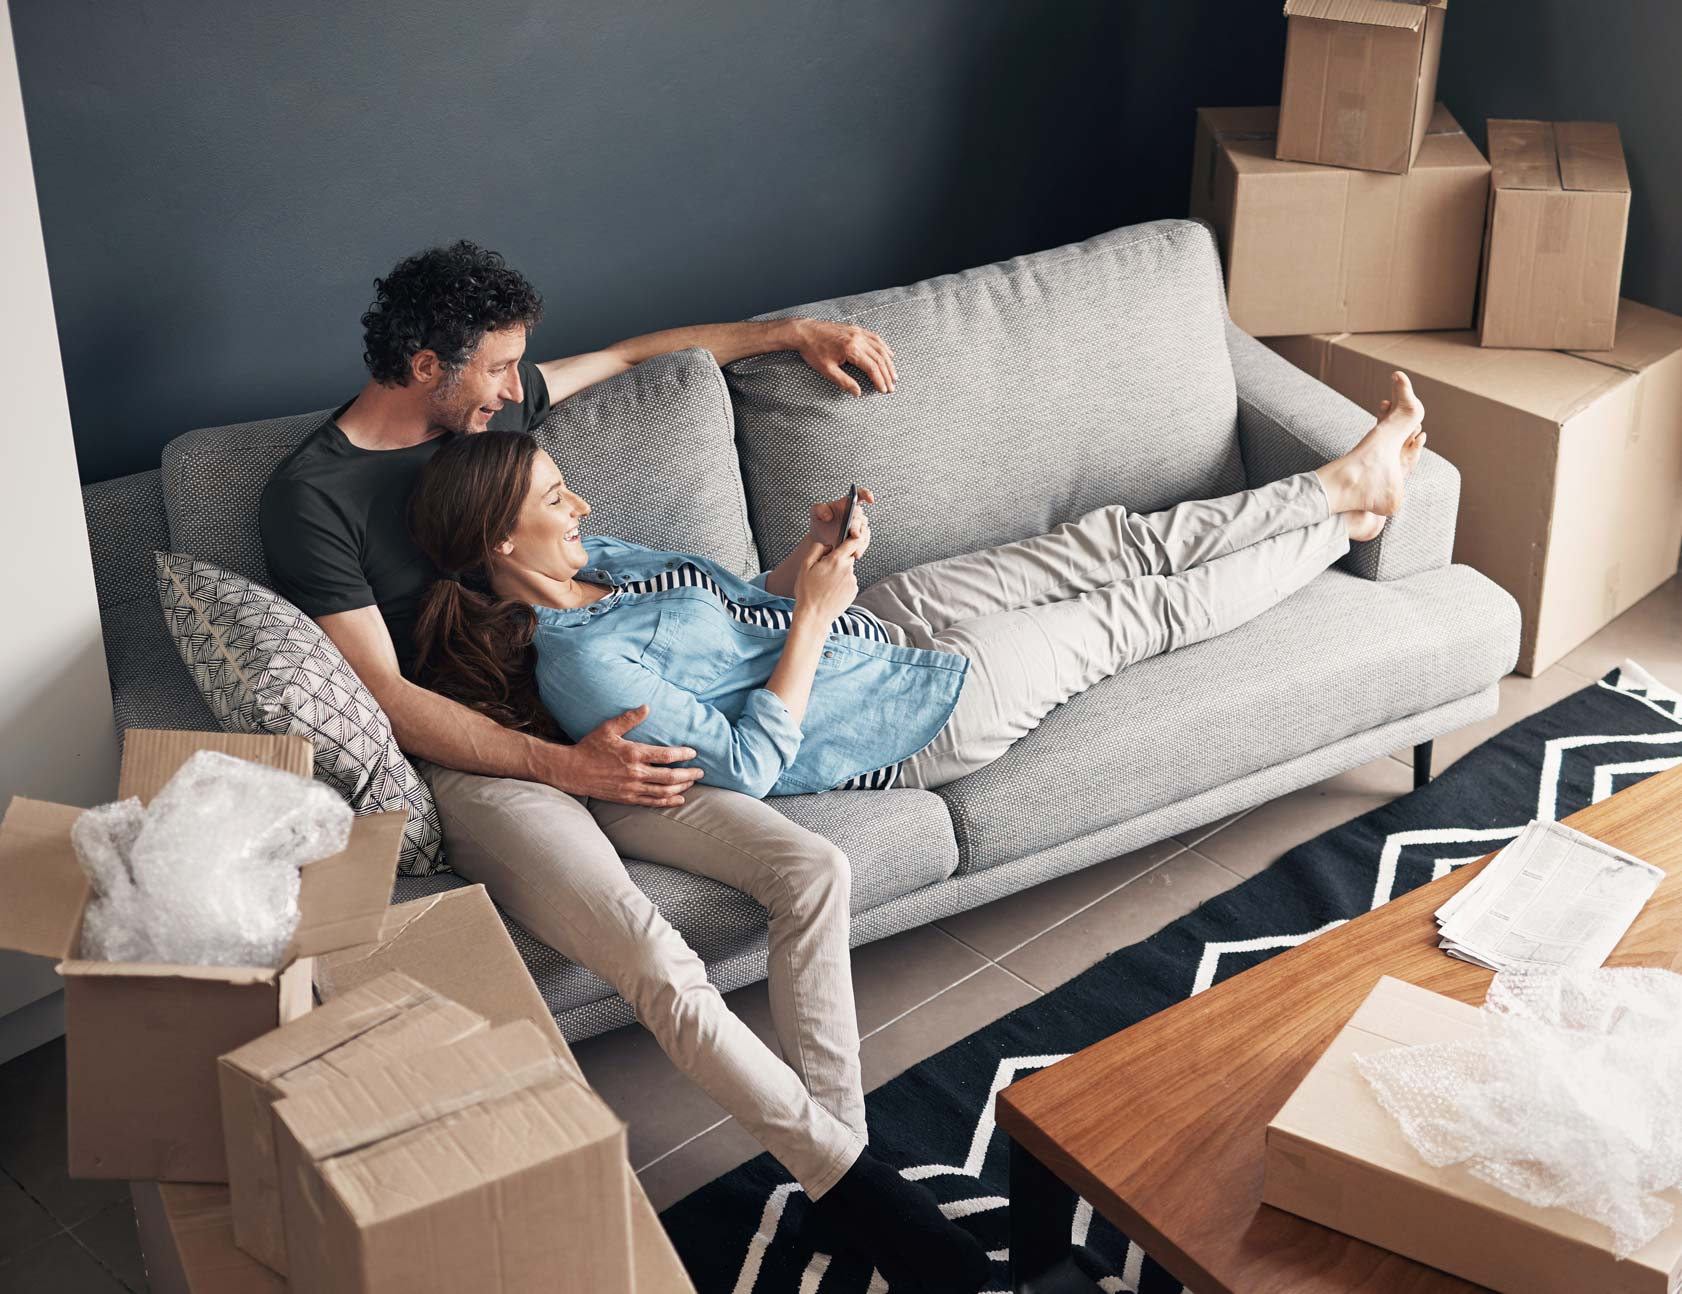 Experienced buyers relaxing in their new home